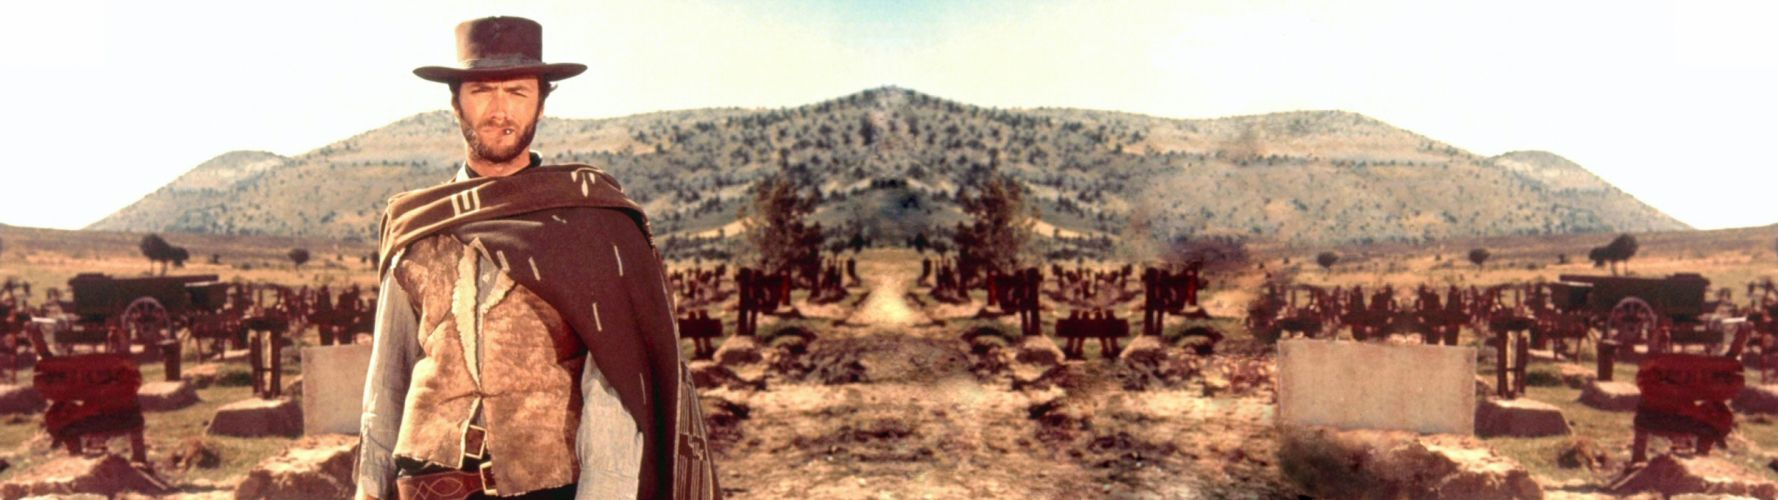 THE GOOD THE BAD AND THE UGLY western clint eastwood multi dual g wallpaper